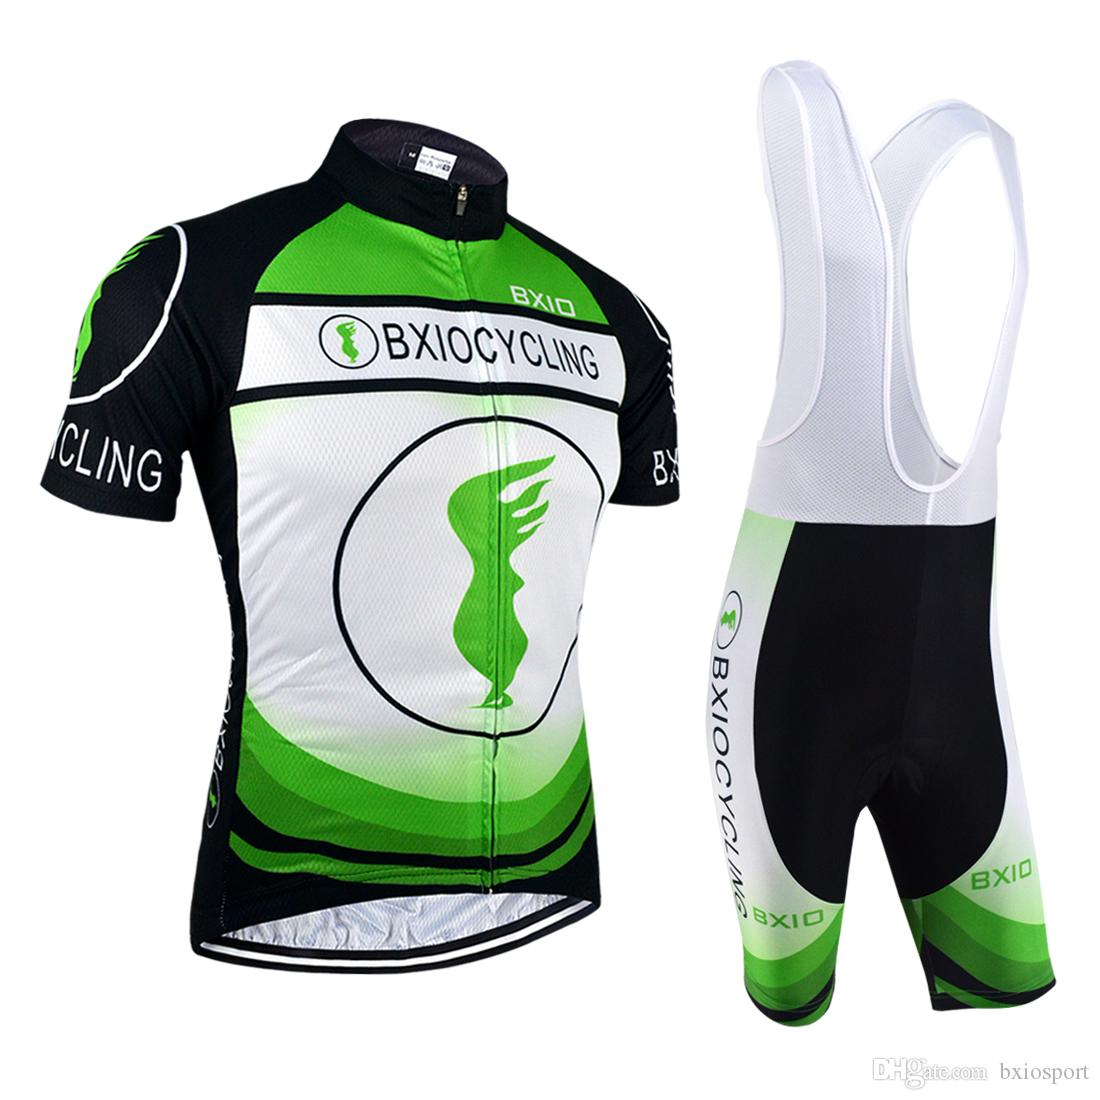 BXIO Brand Green Cycling Jerseys Lycra Cycle Wear Sets Road Cycling Shorts  Suits Unisex Quick Dry Short Sleeve Cycling Clothes BX 0209O 017 Cool  Cycling ... 88e6b6ffd